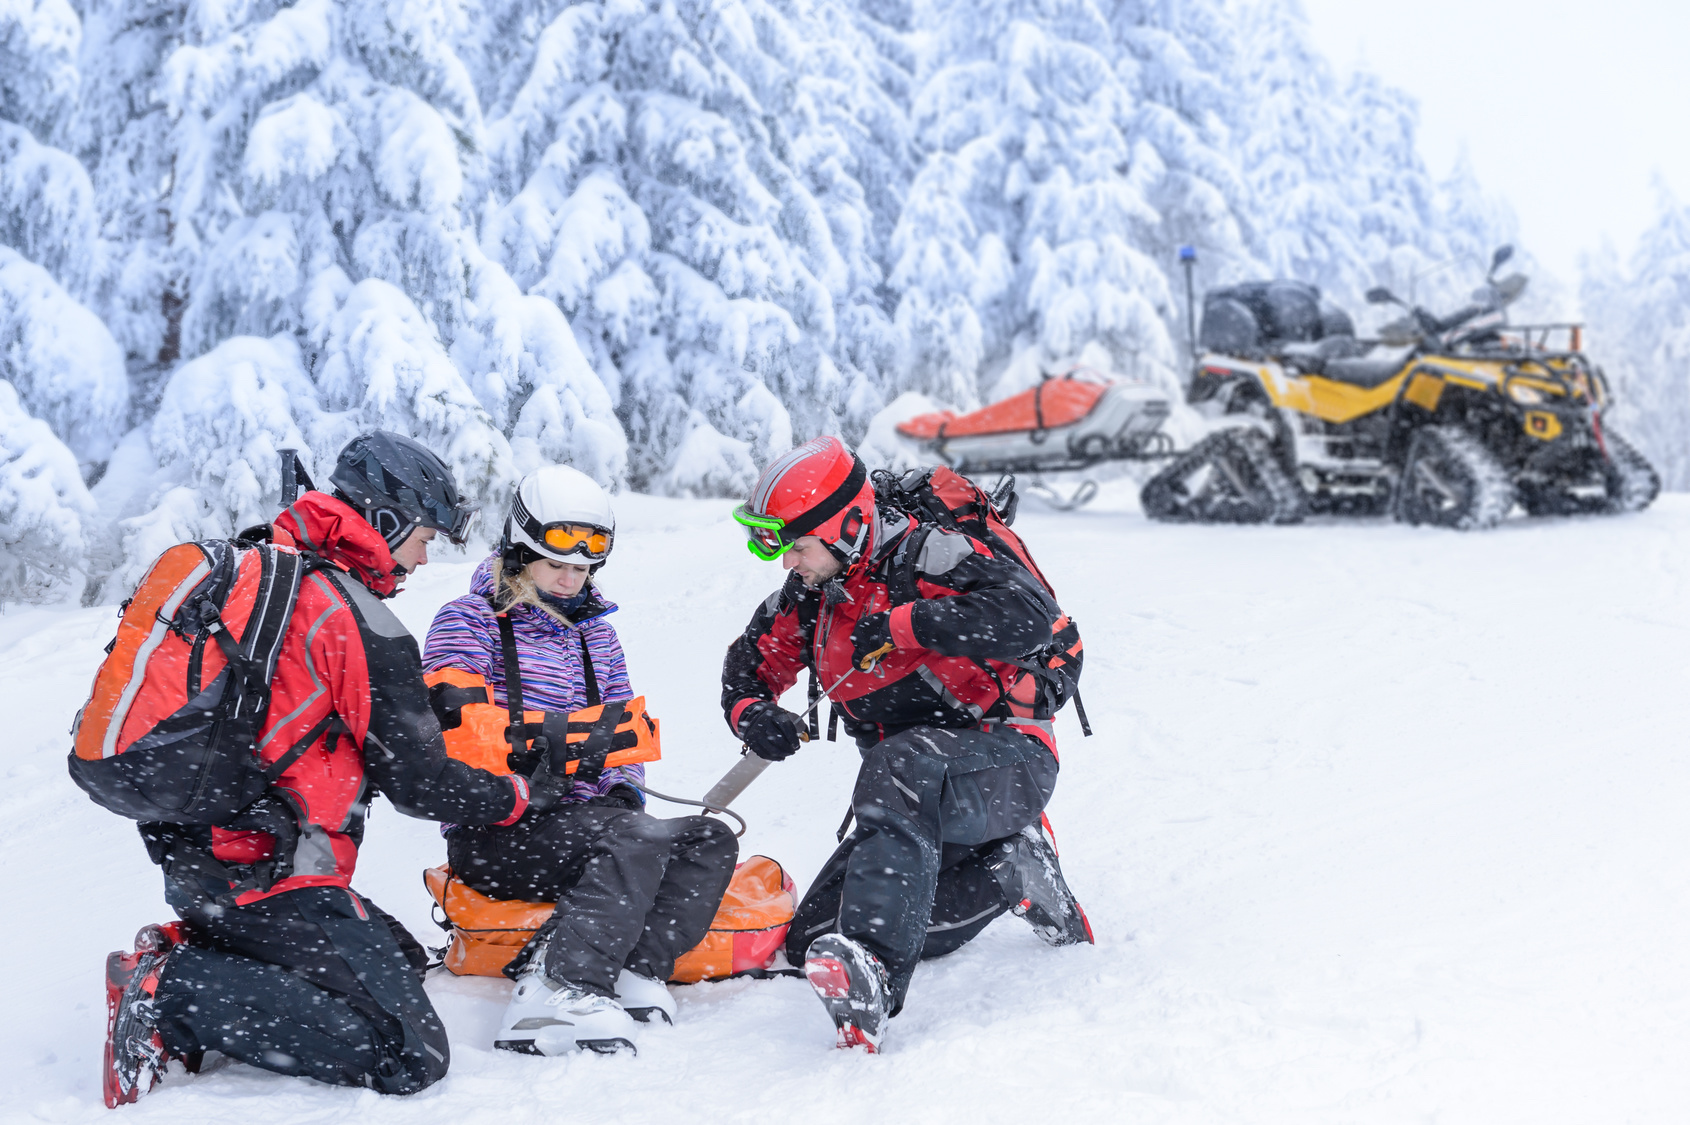 Injured skier being helped by medical ski patrol at a Colorado ski resort